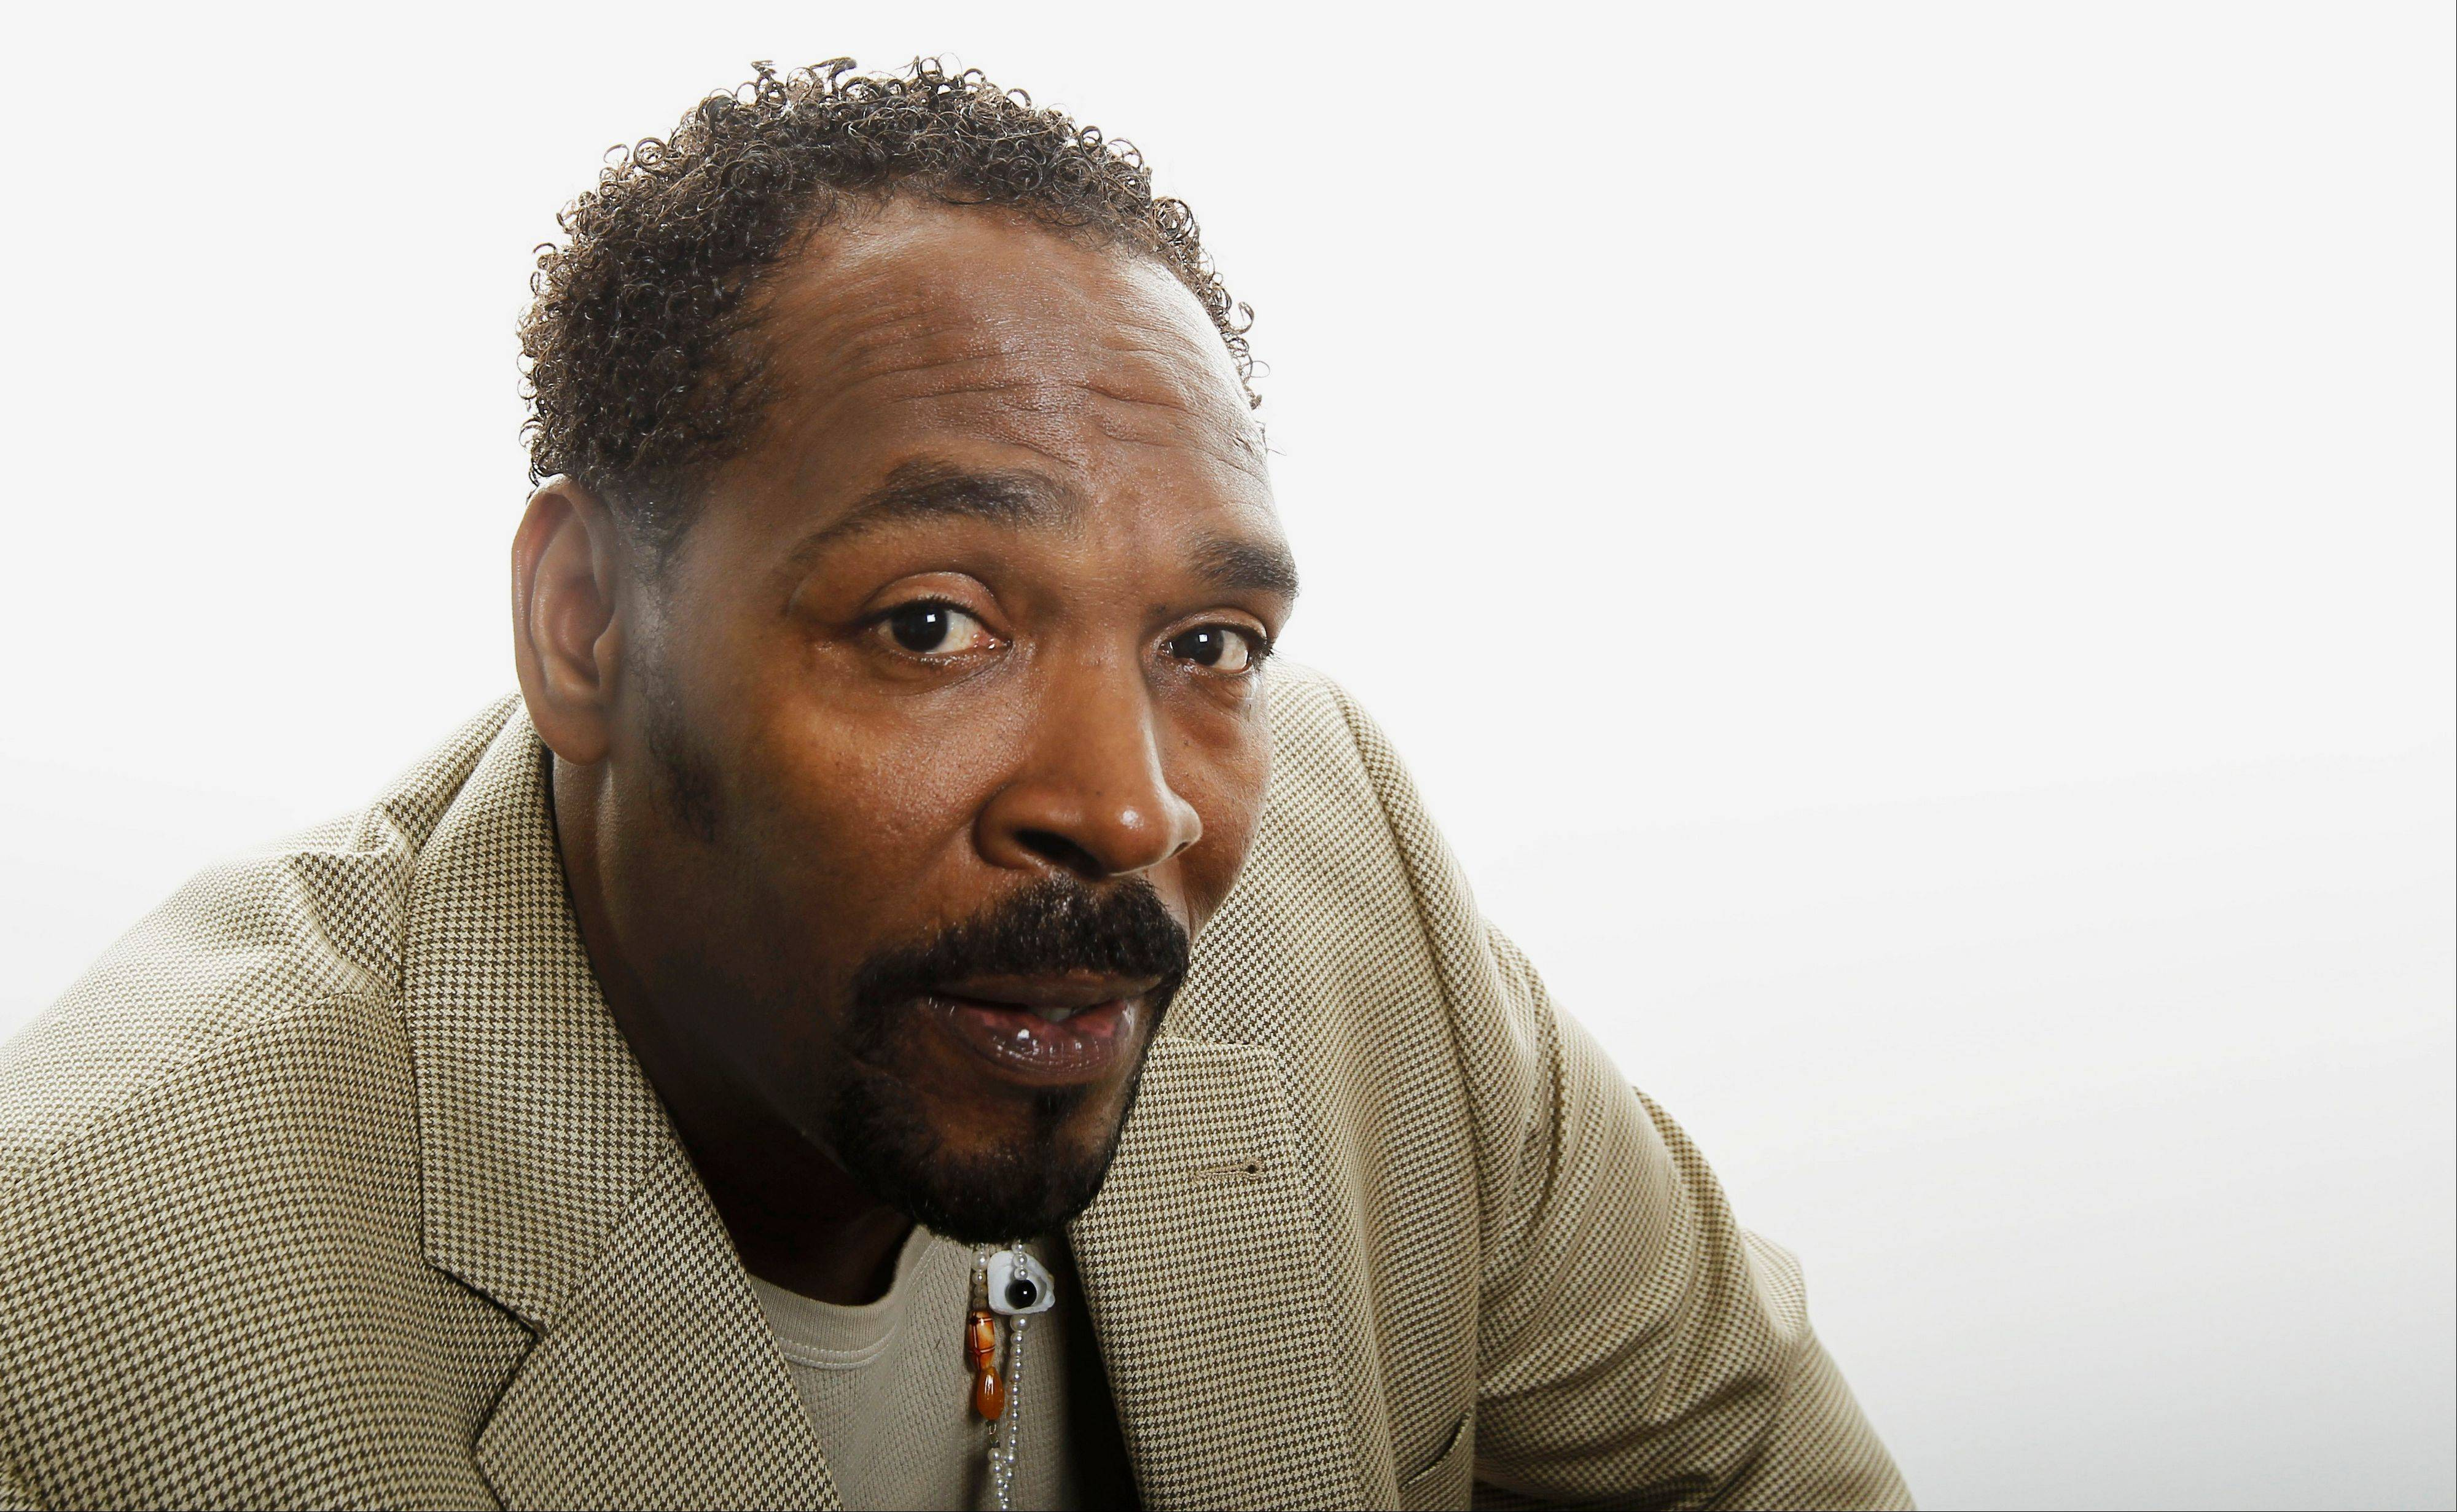 Rodney King, whose 1991 videotaped beating by Los Angeles police officers was the spark for one of the most destructive U.S. race riots, died on June 17. He was 47.